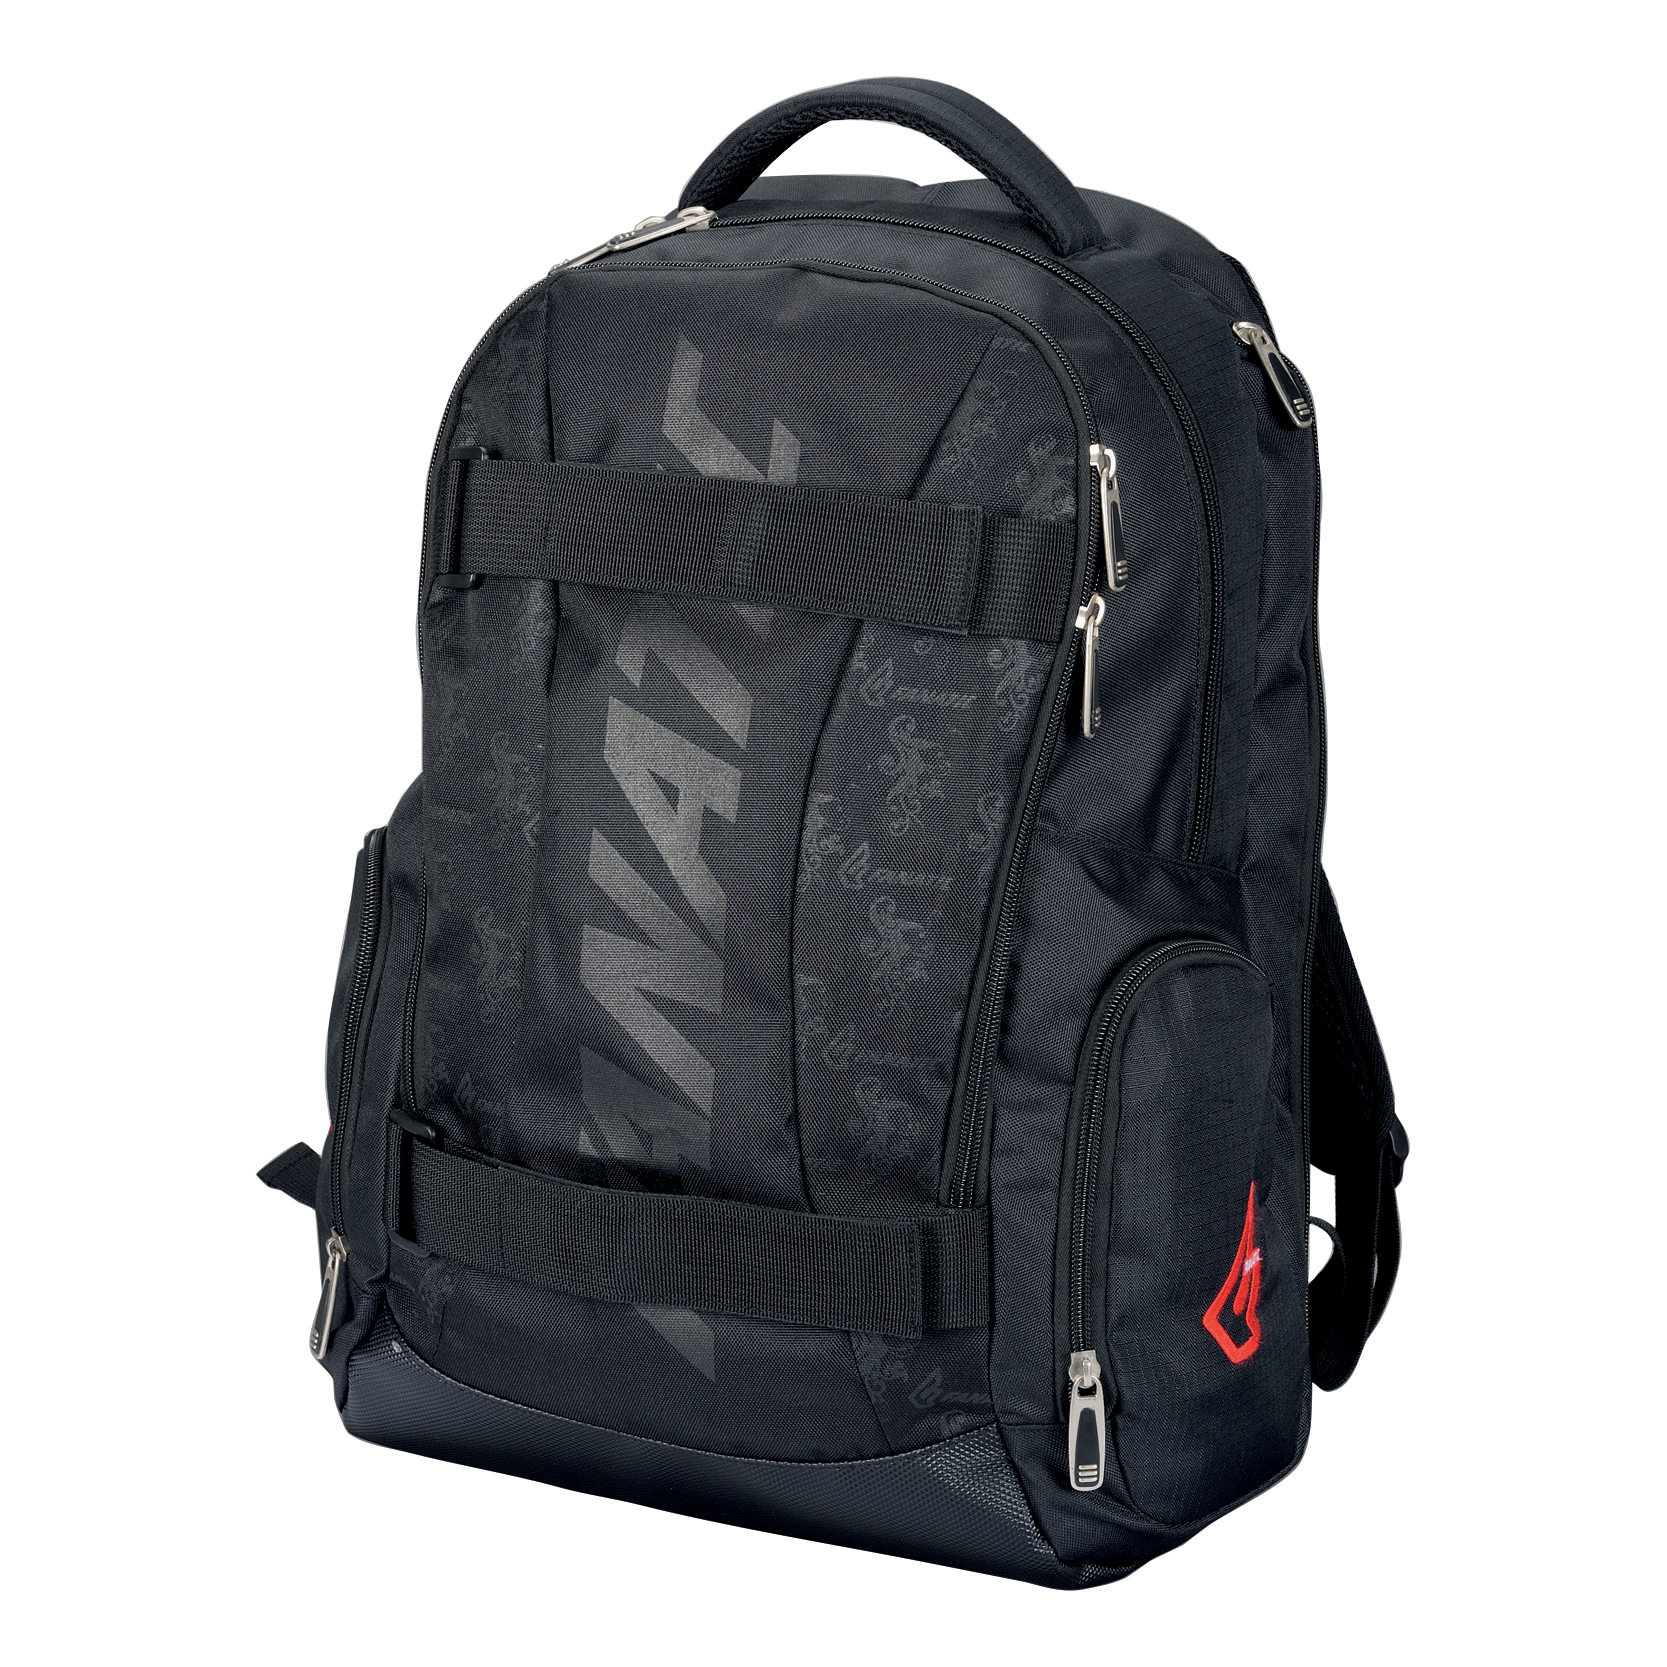 Lightpak Hawk Laptop Backpack Padded Polyester Capacity 14in Black Ref 24603